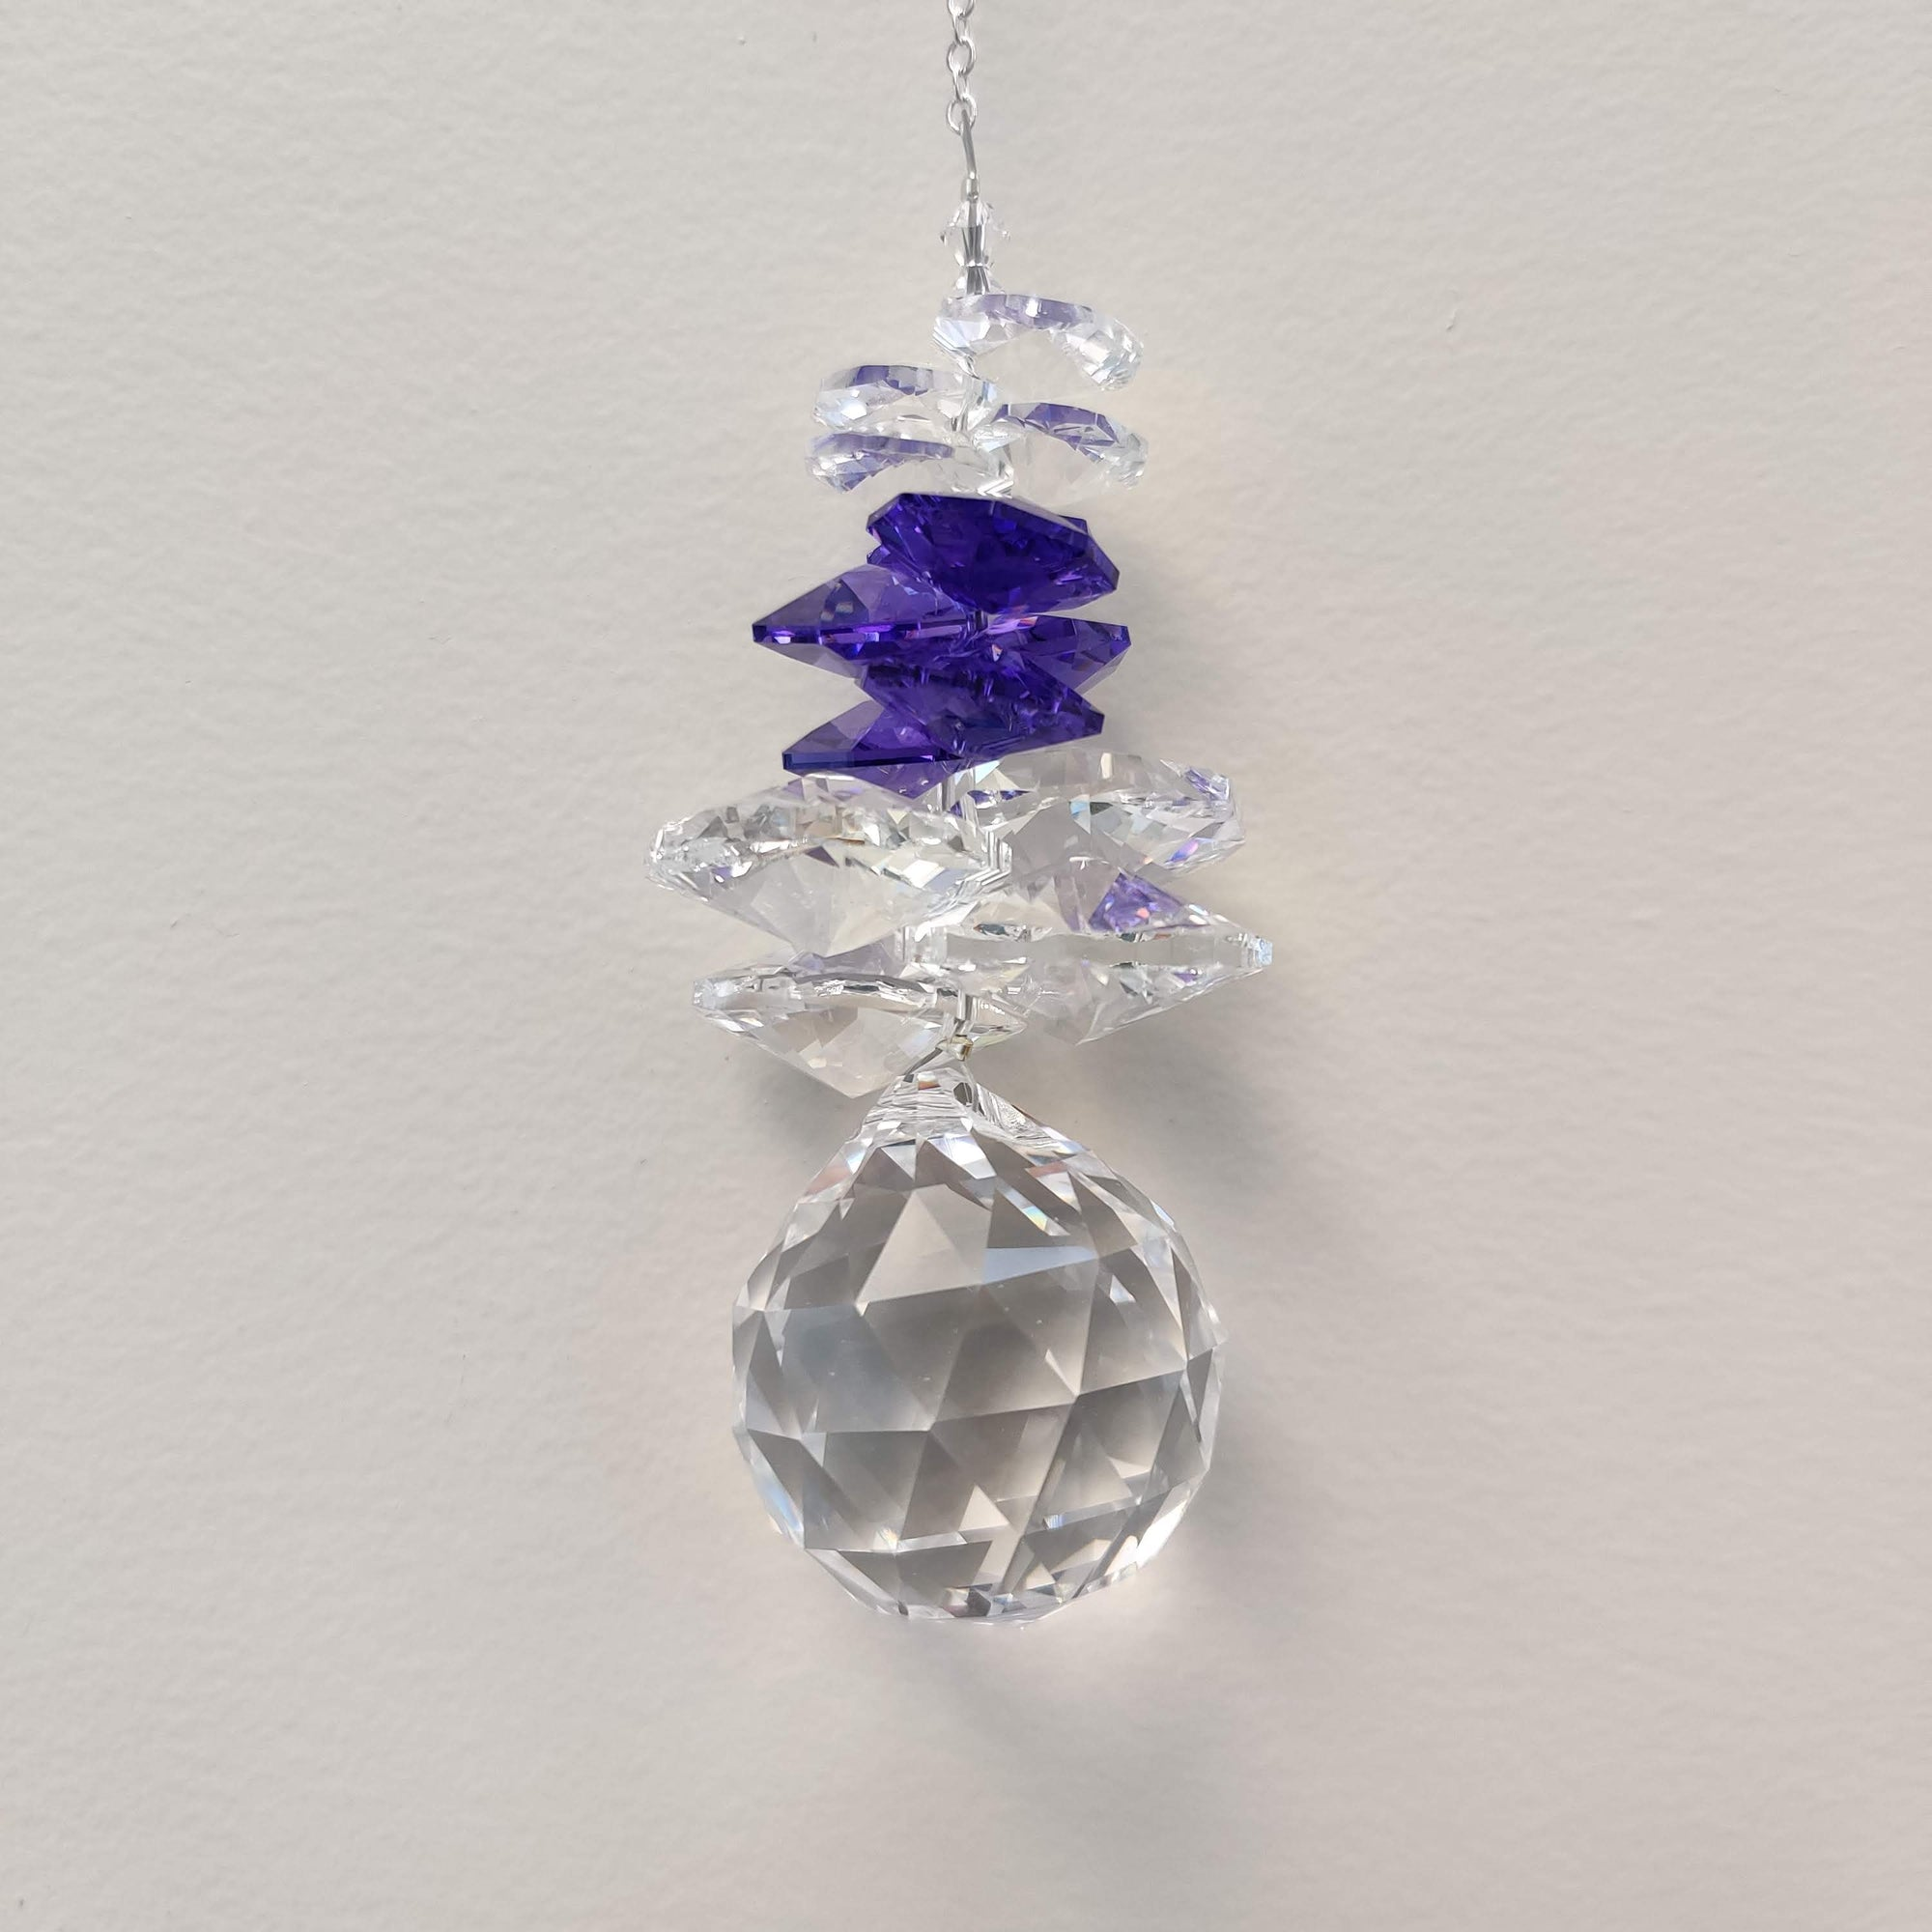 Clarus Ice Sphere Swarovski Crystal - Blue/Violet - Rivendell Shop